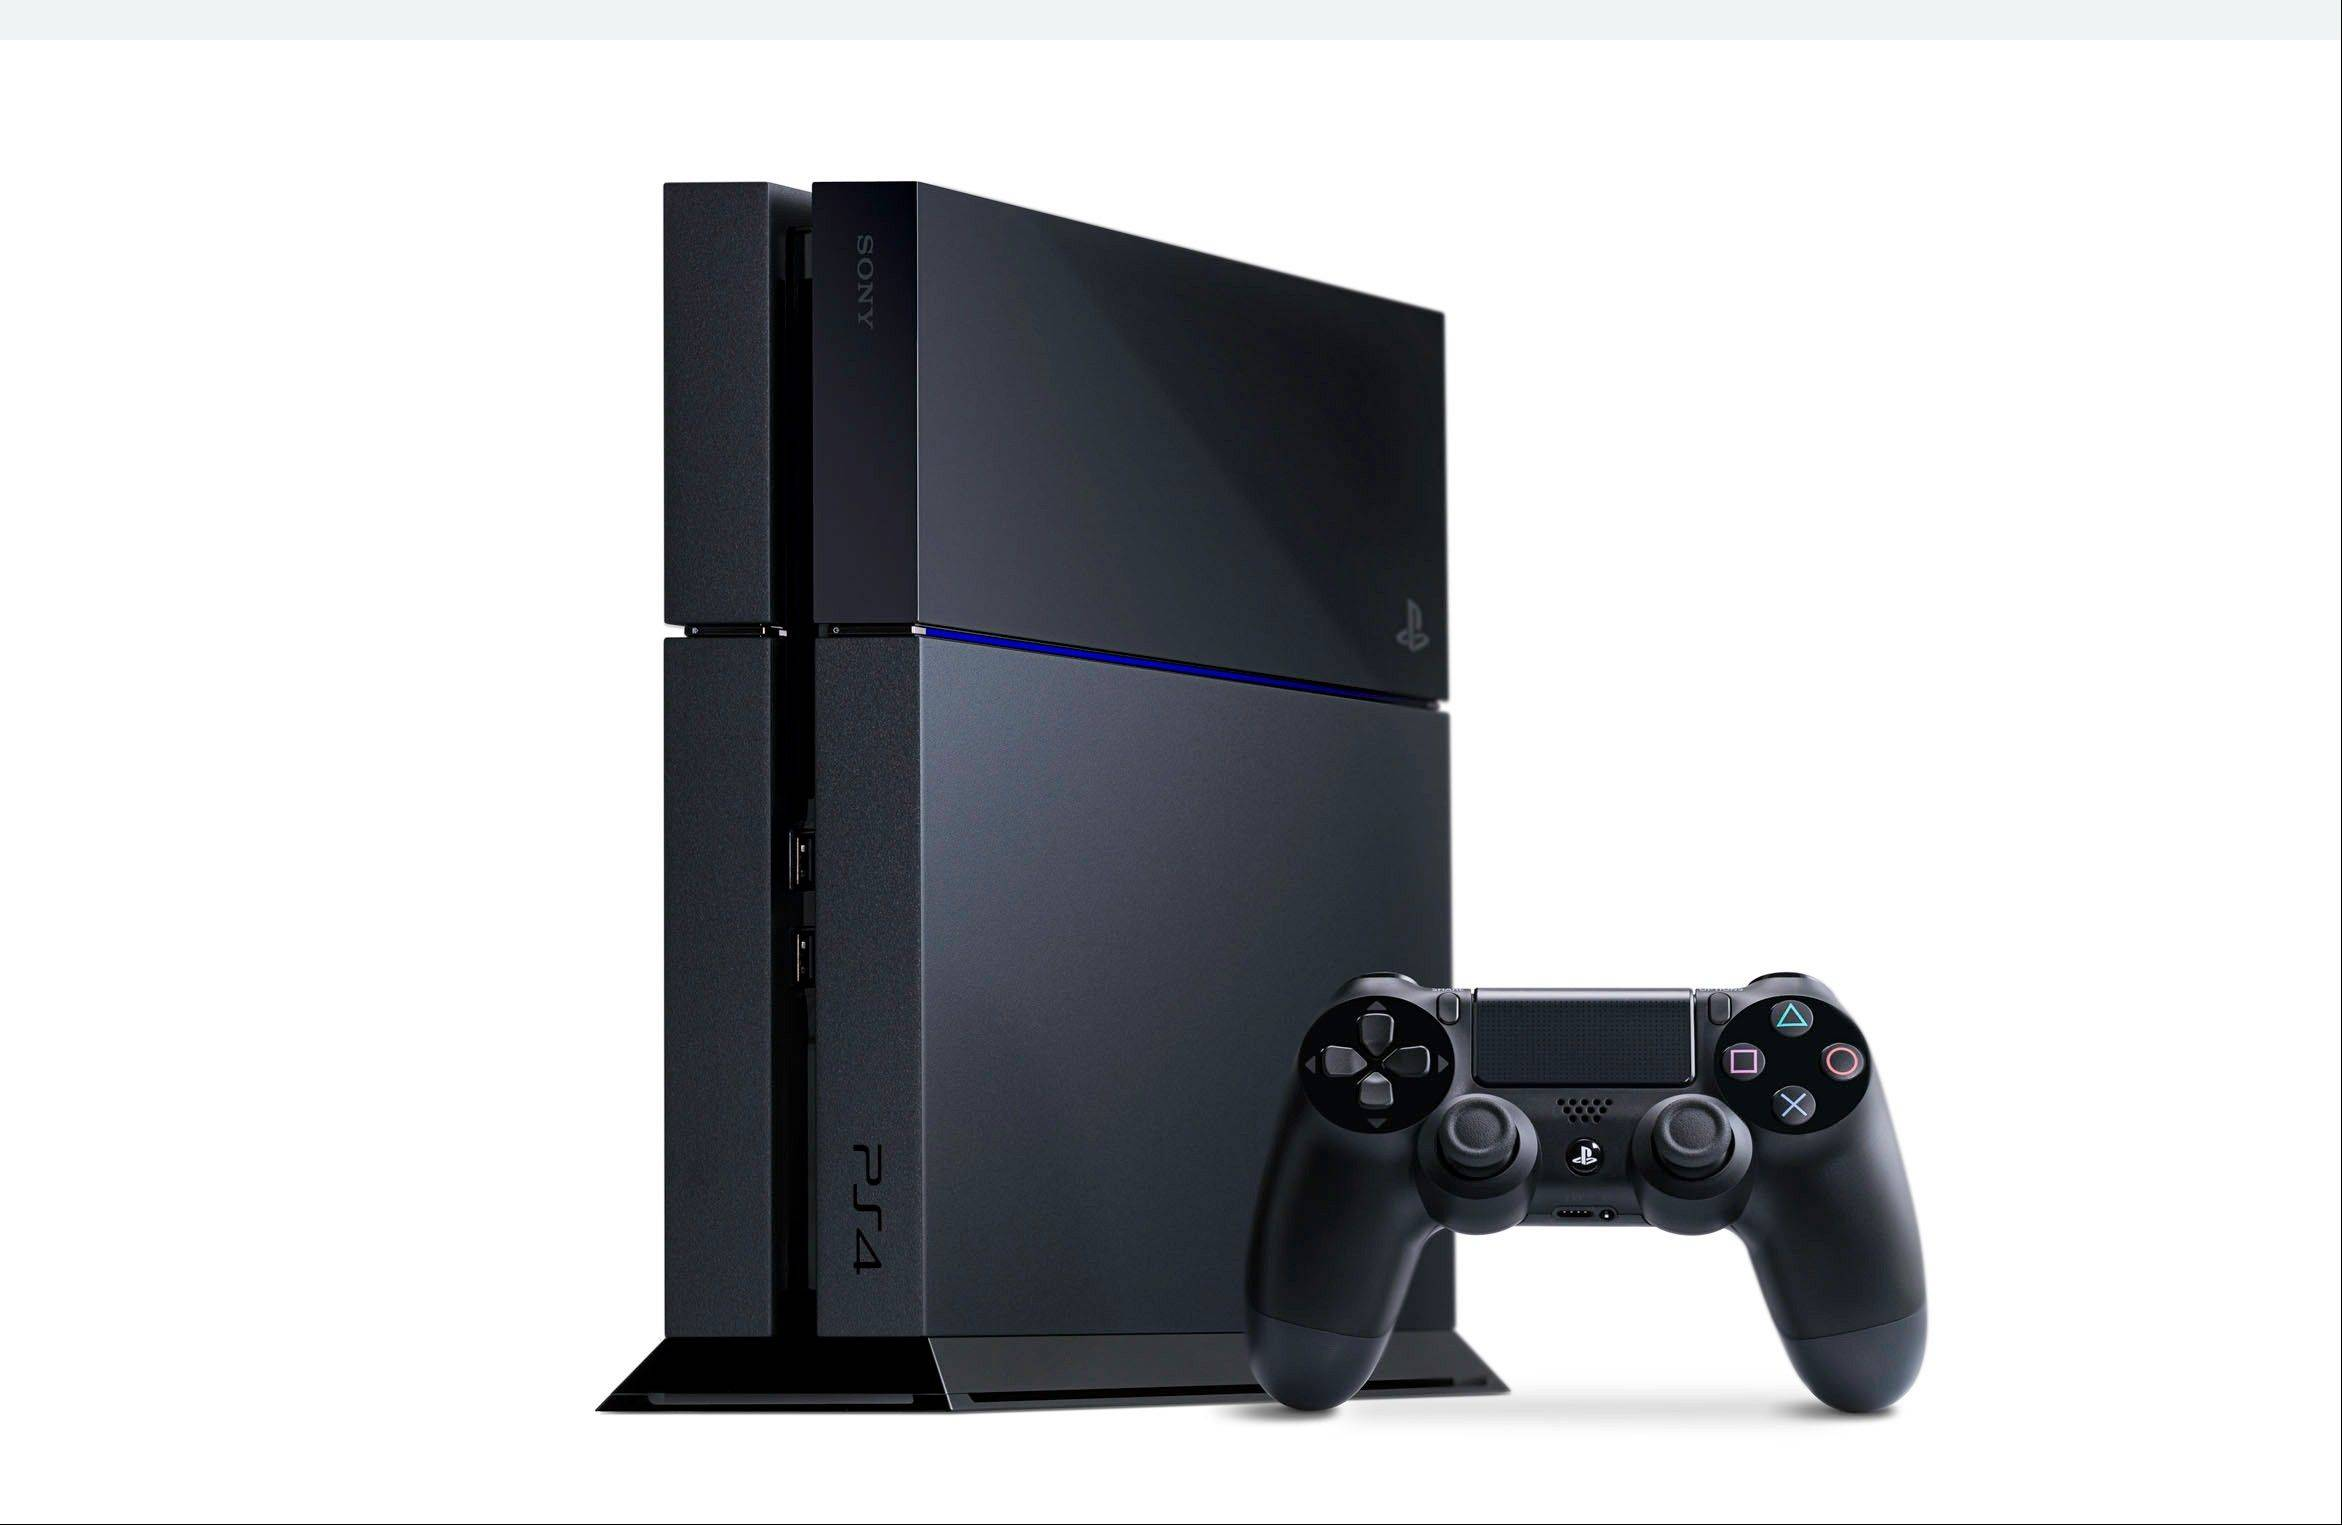 Sony PlayStation 4's on-screen user interface has been streamlined, with a horizontal bar of large icons for games and apps.